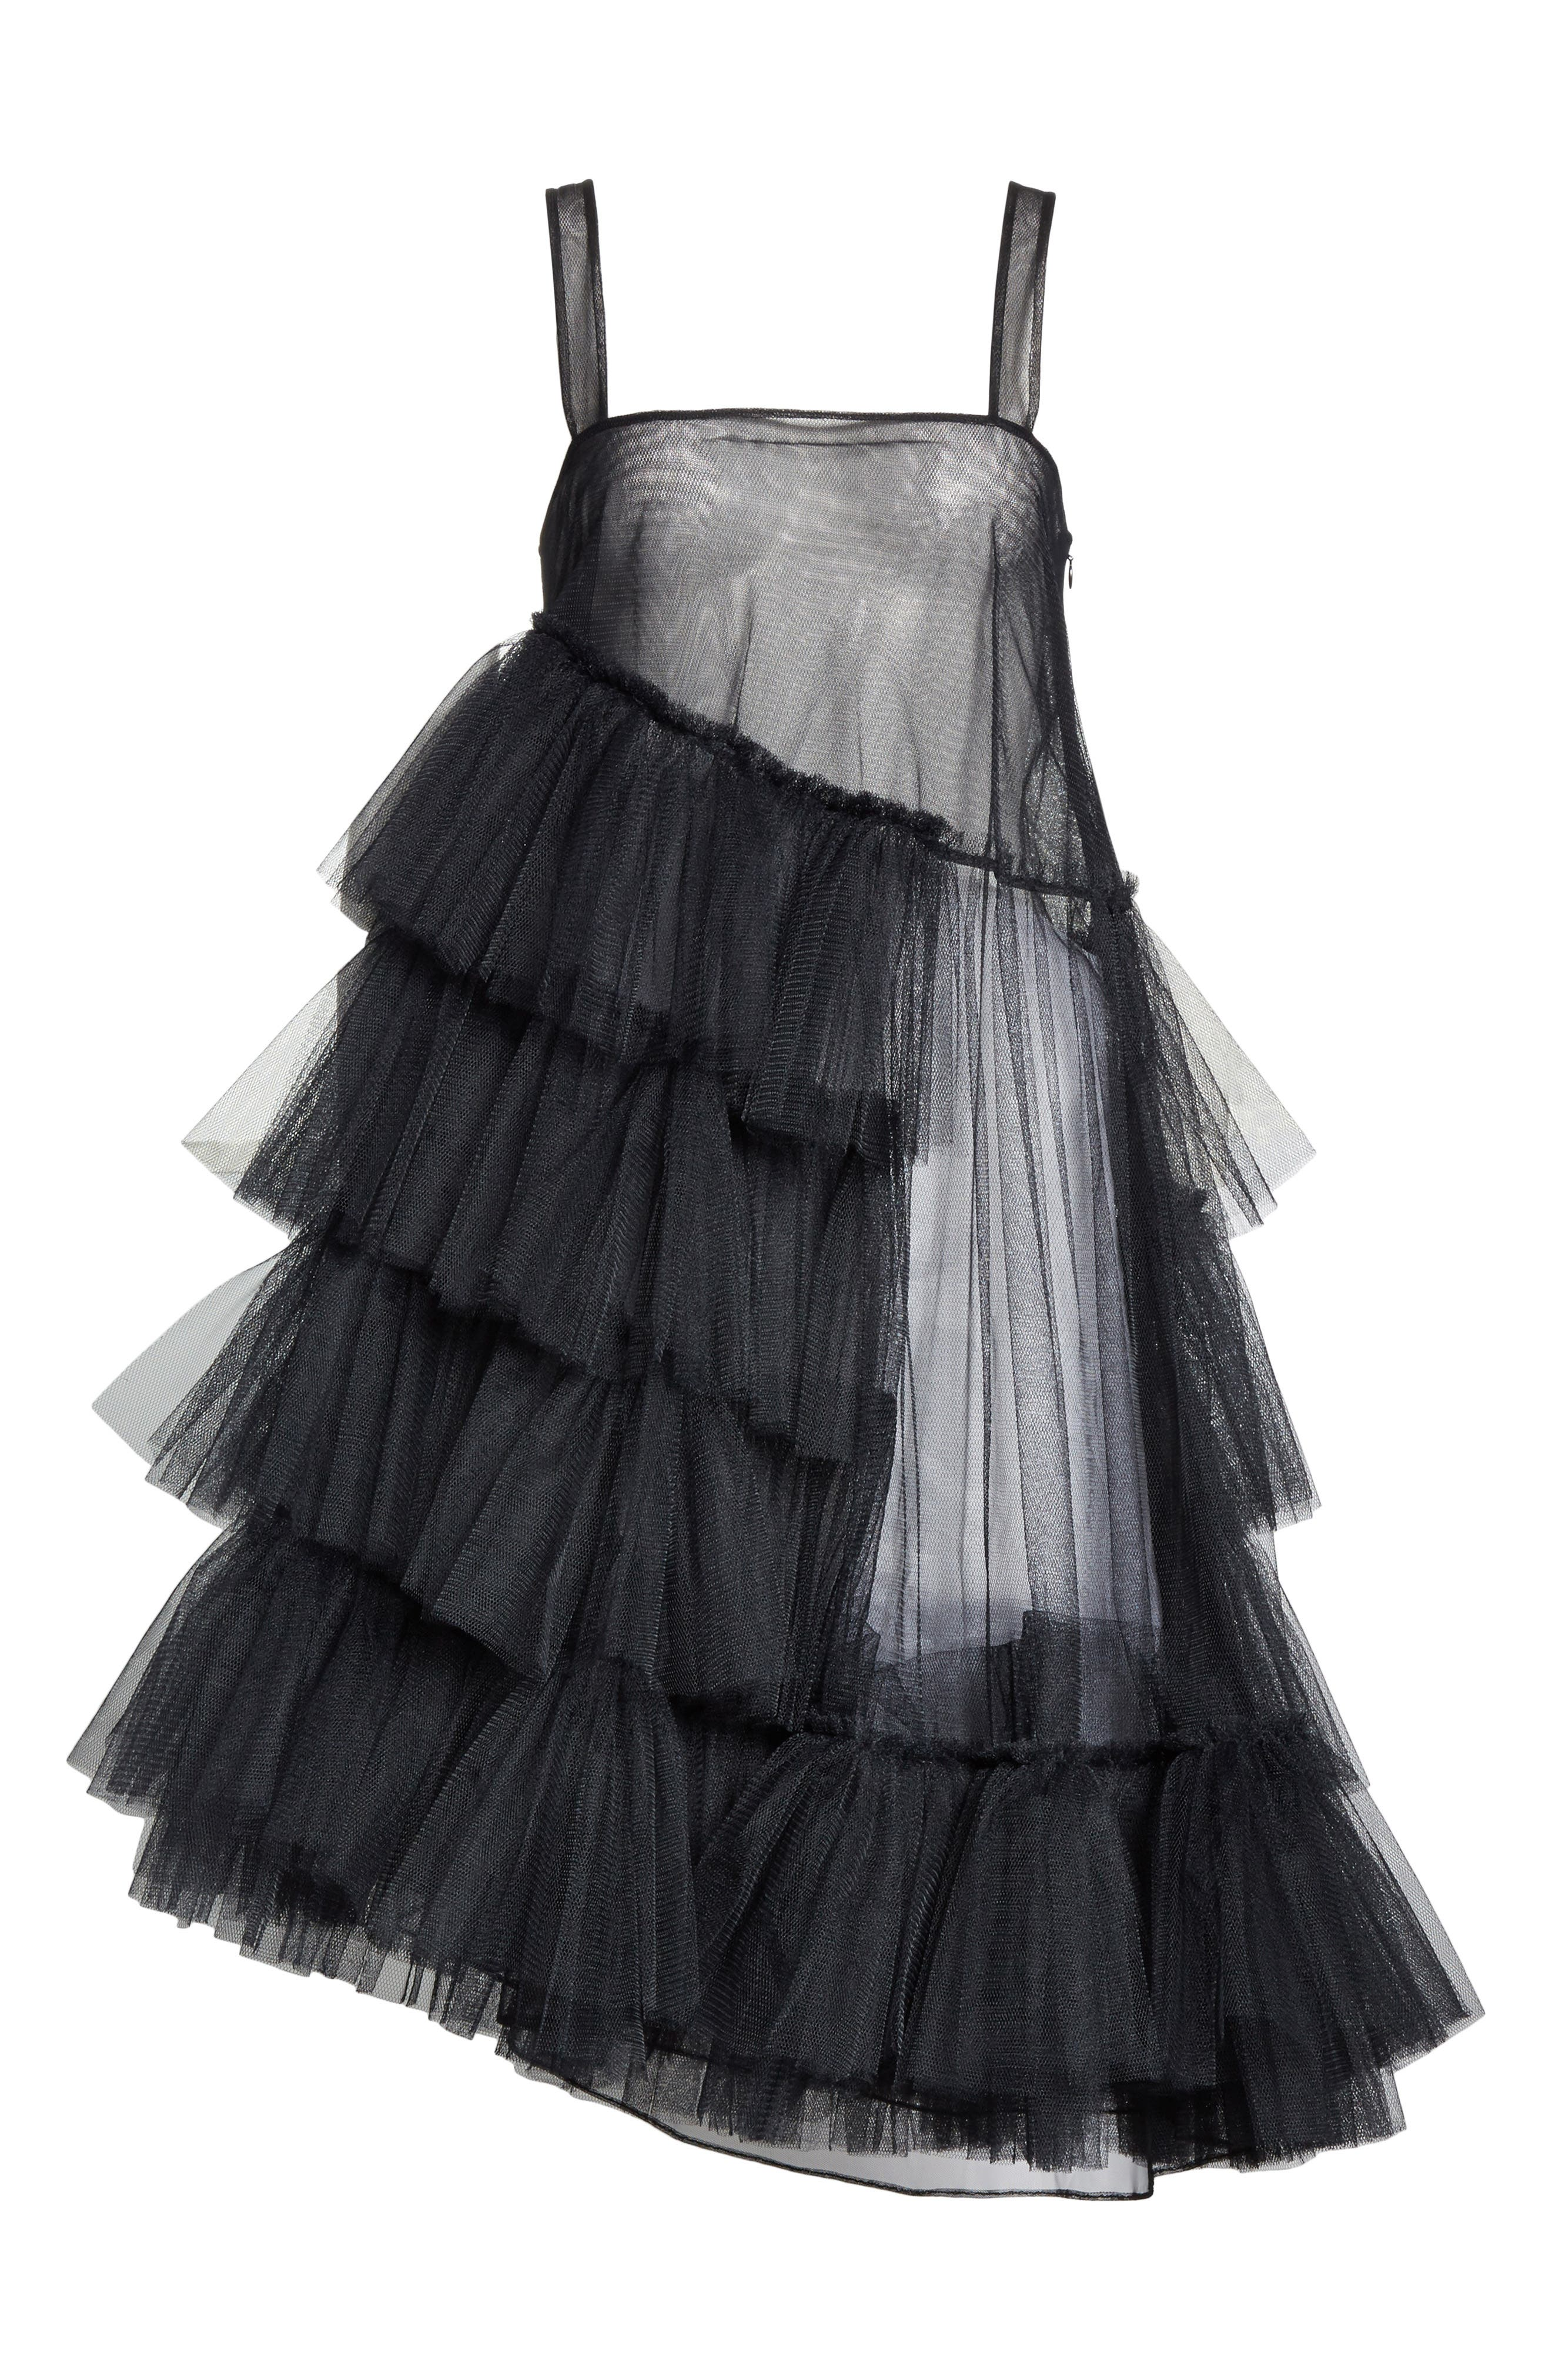 Turbo Tiered Tulle Dress,                             Alternate thumbnail 6, color,                             001